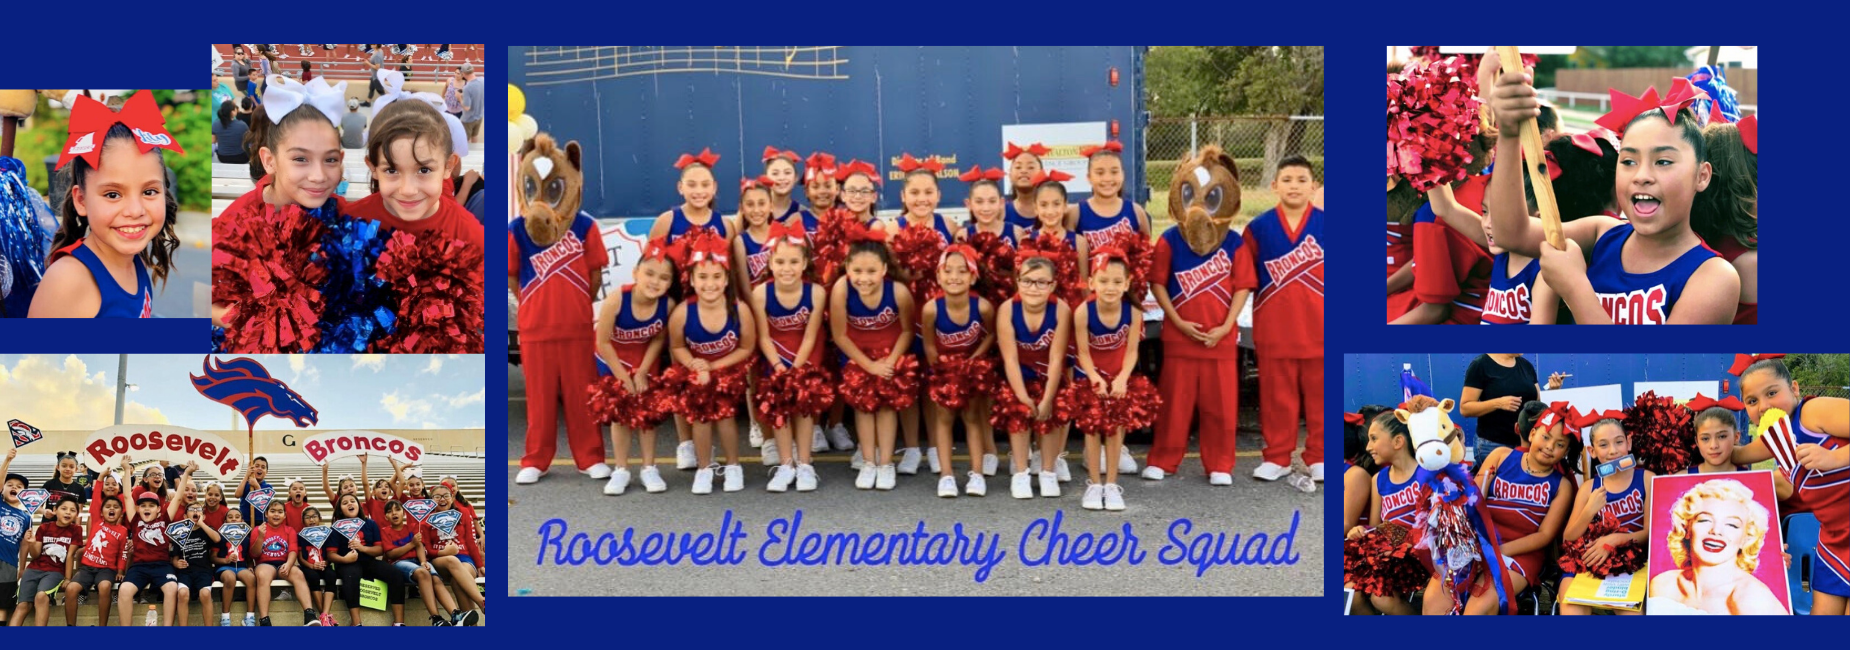 Roosevelt Elementary Cheer Squad